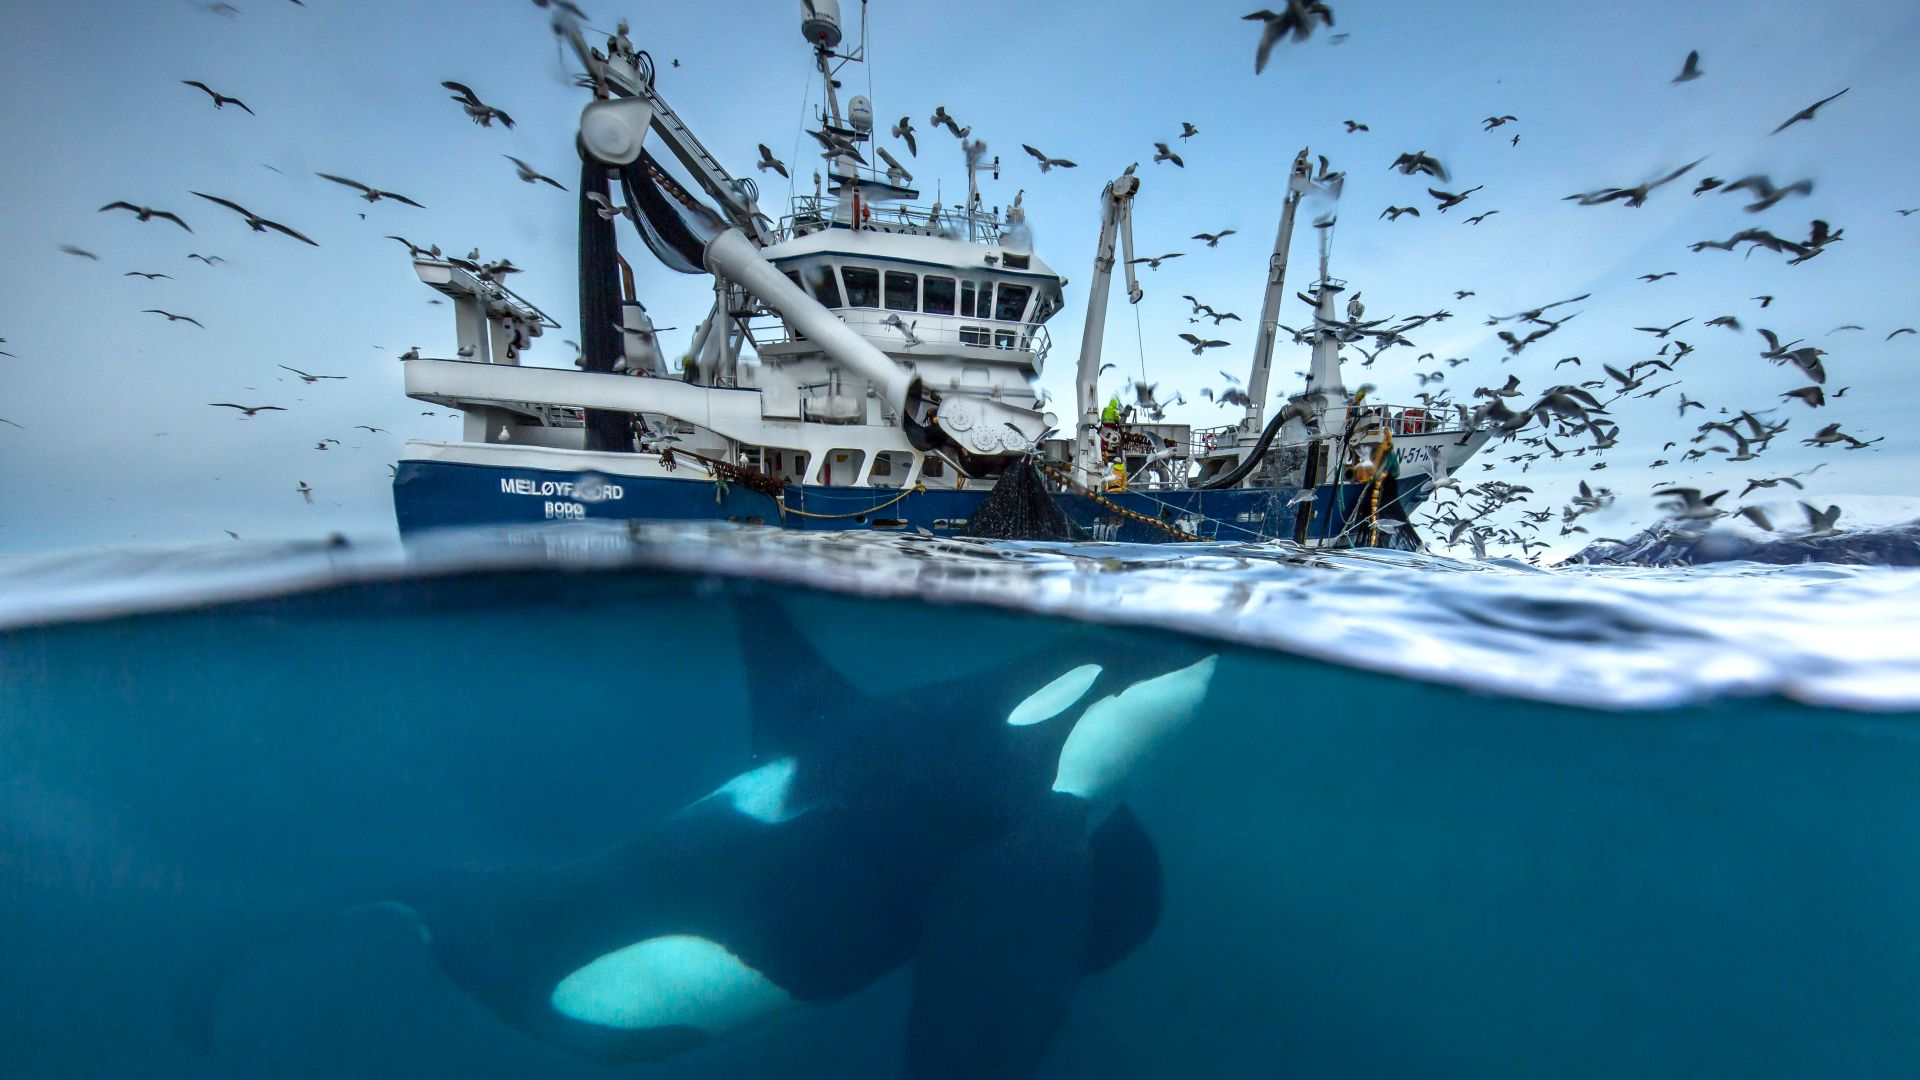 2016 Wildlife Photography finalist, whale, boat, birds, Norway, Ocean, underwater